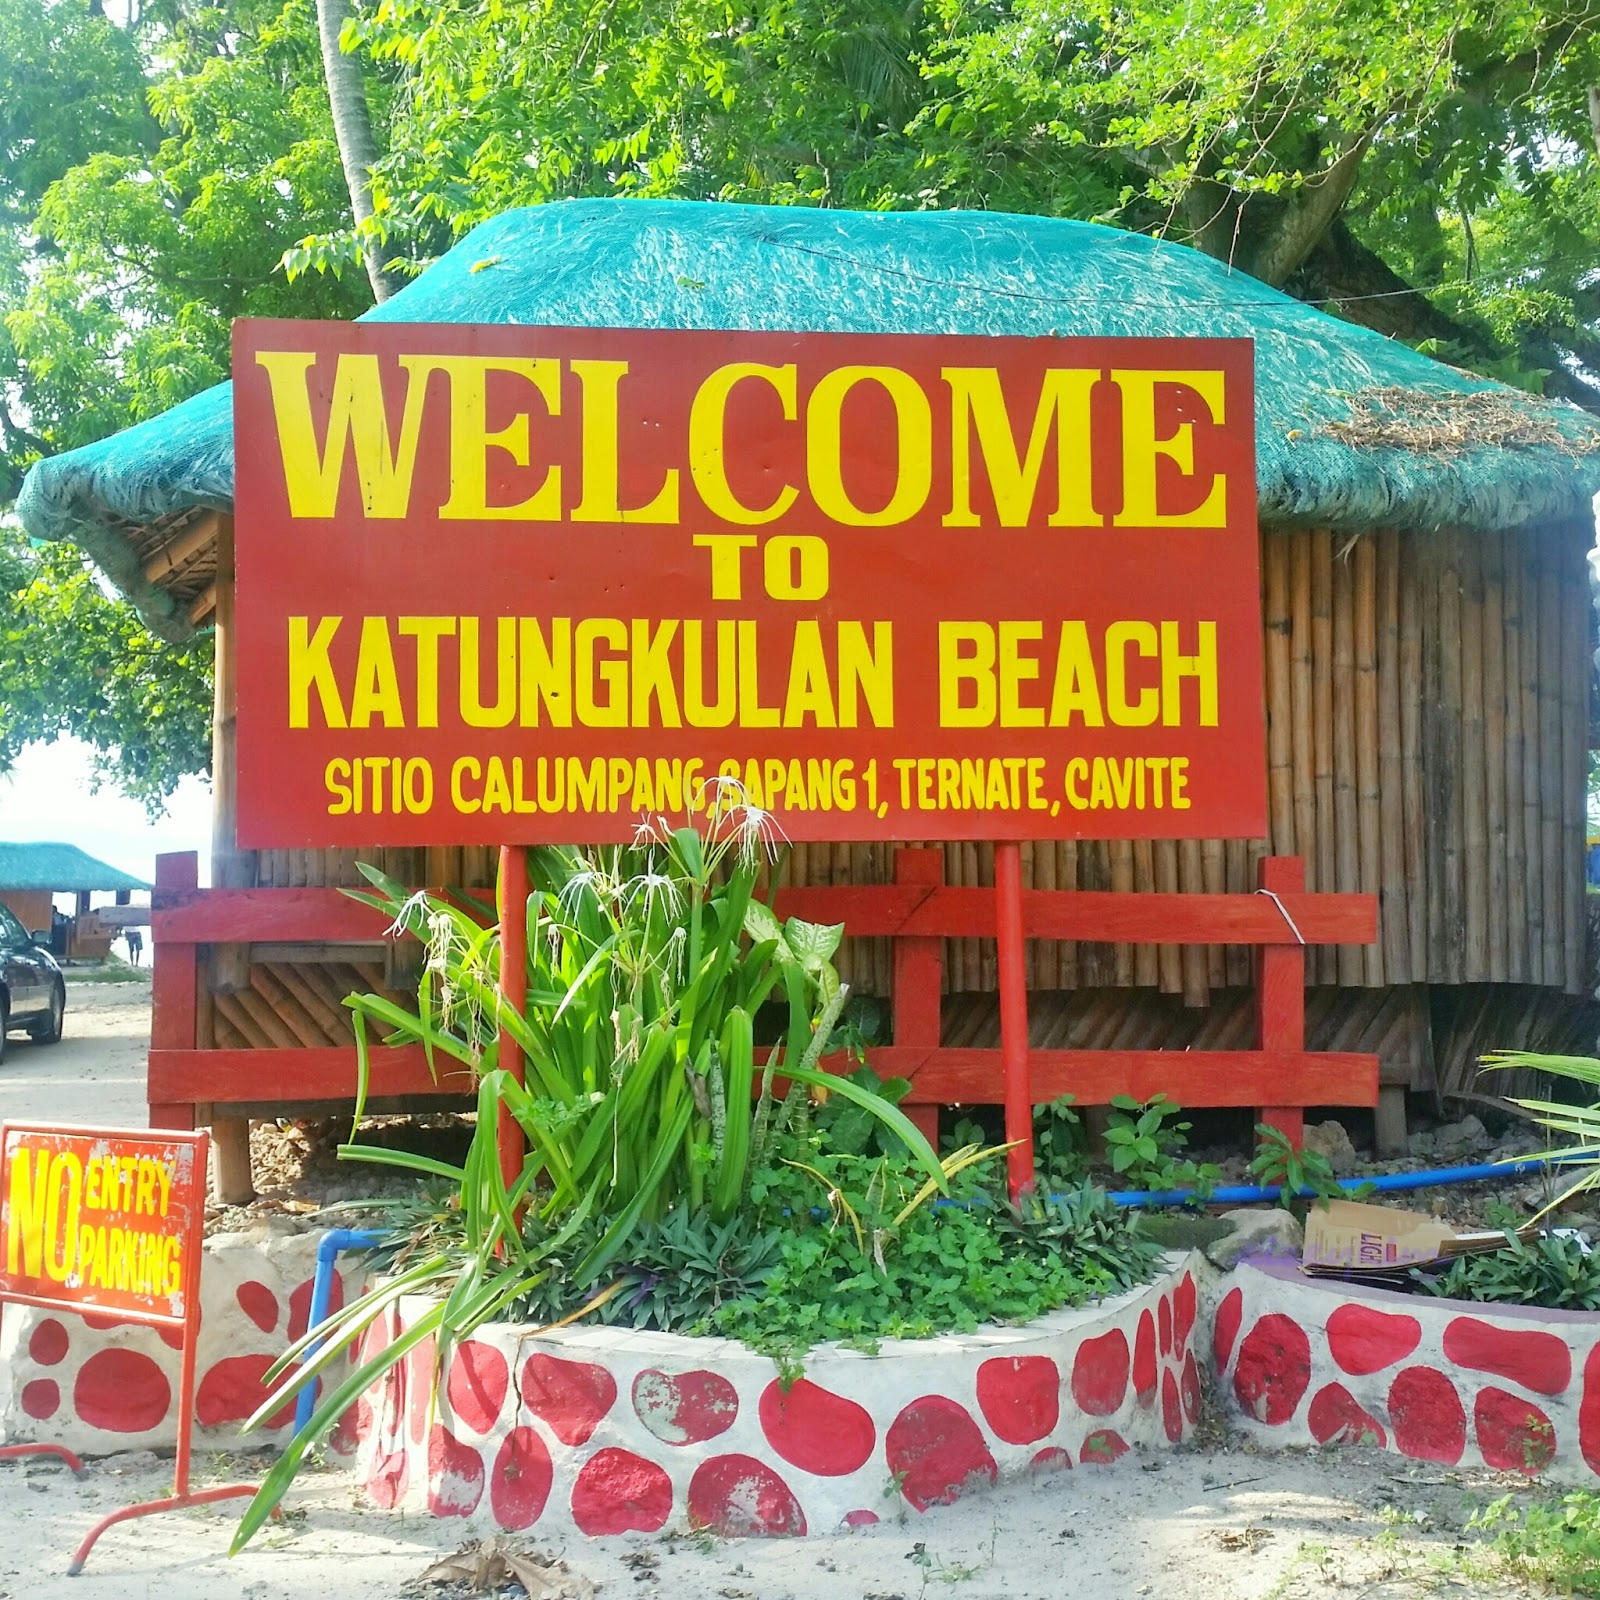 Katungkulan beach resort/ Boracay De Cavite